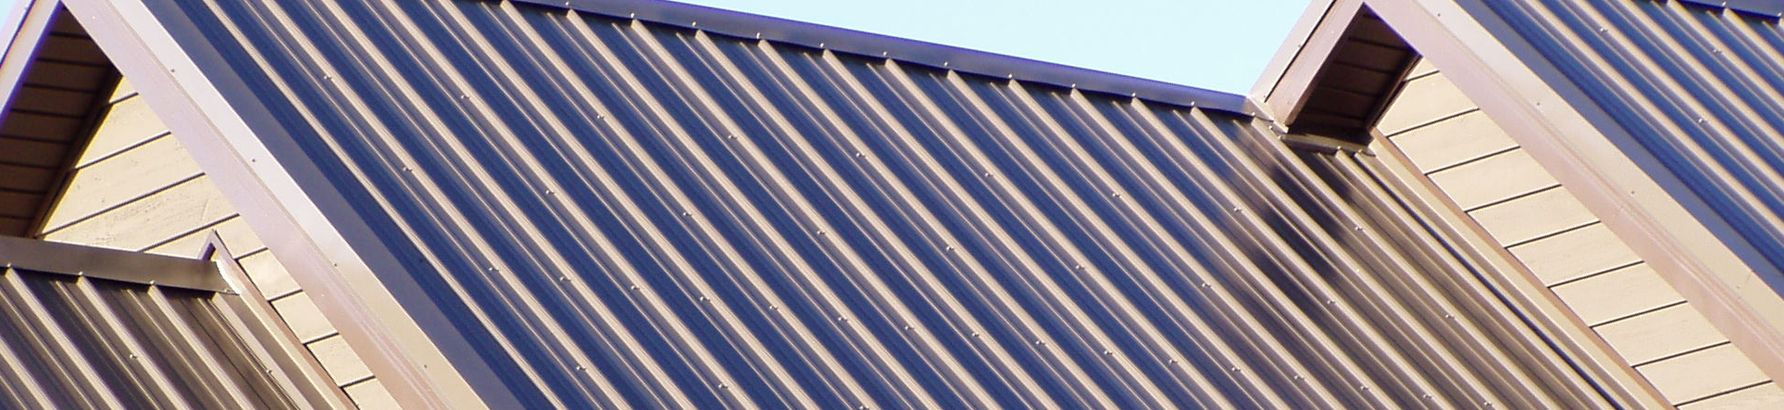 Metal Roofing Metal Roof Flat Roof Replacement Roofing